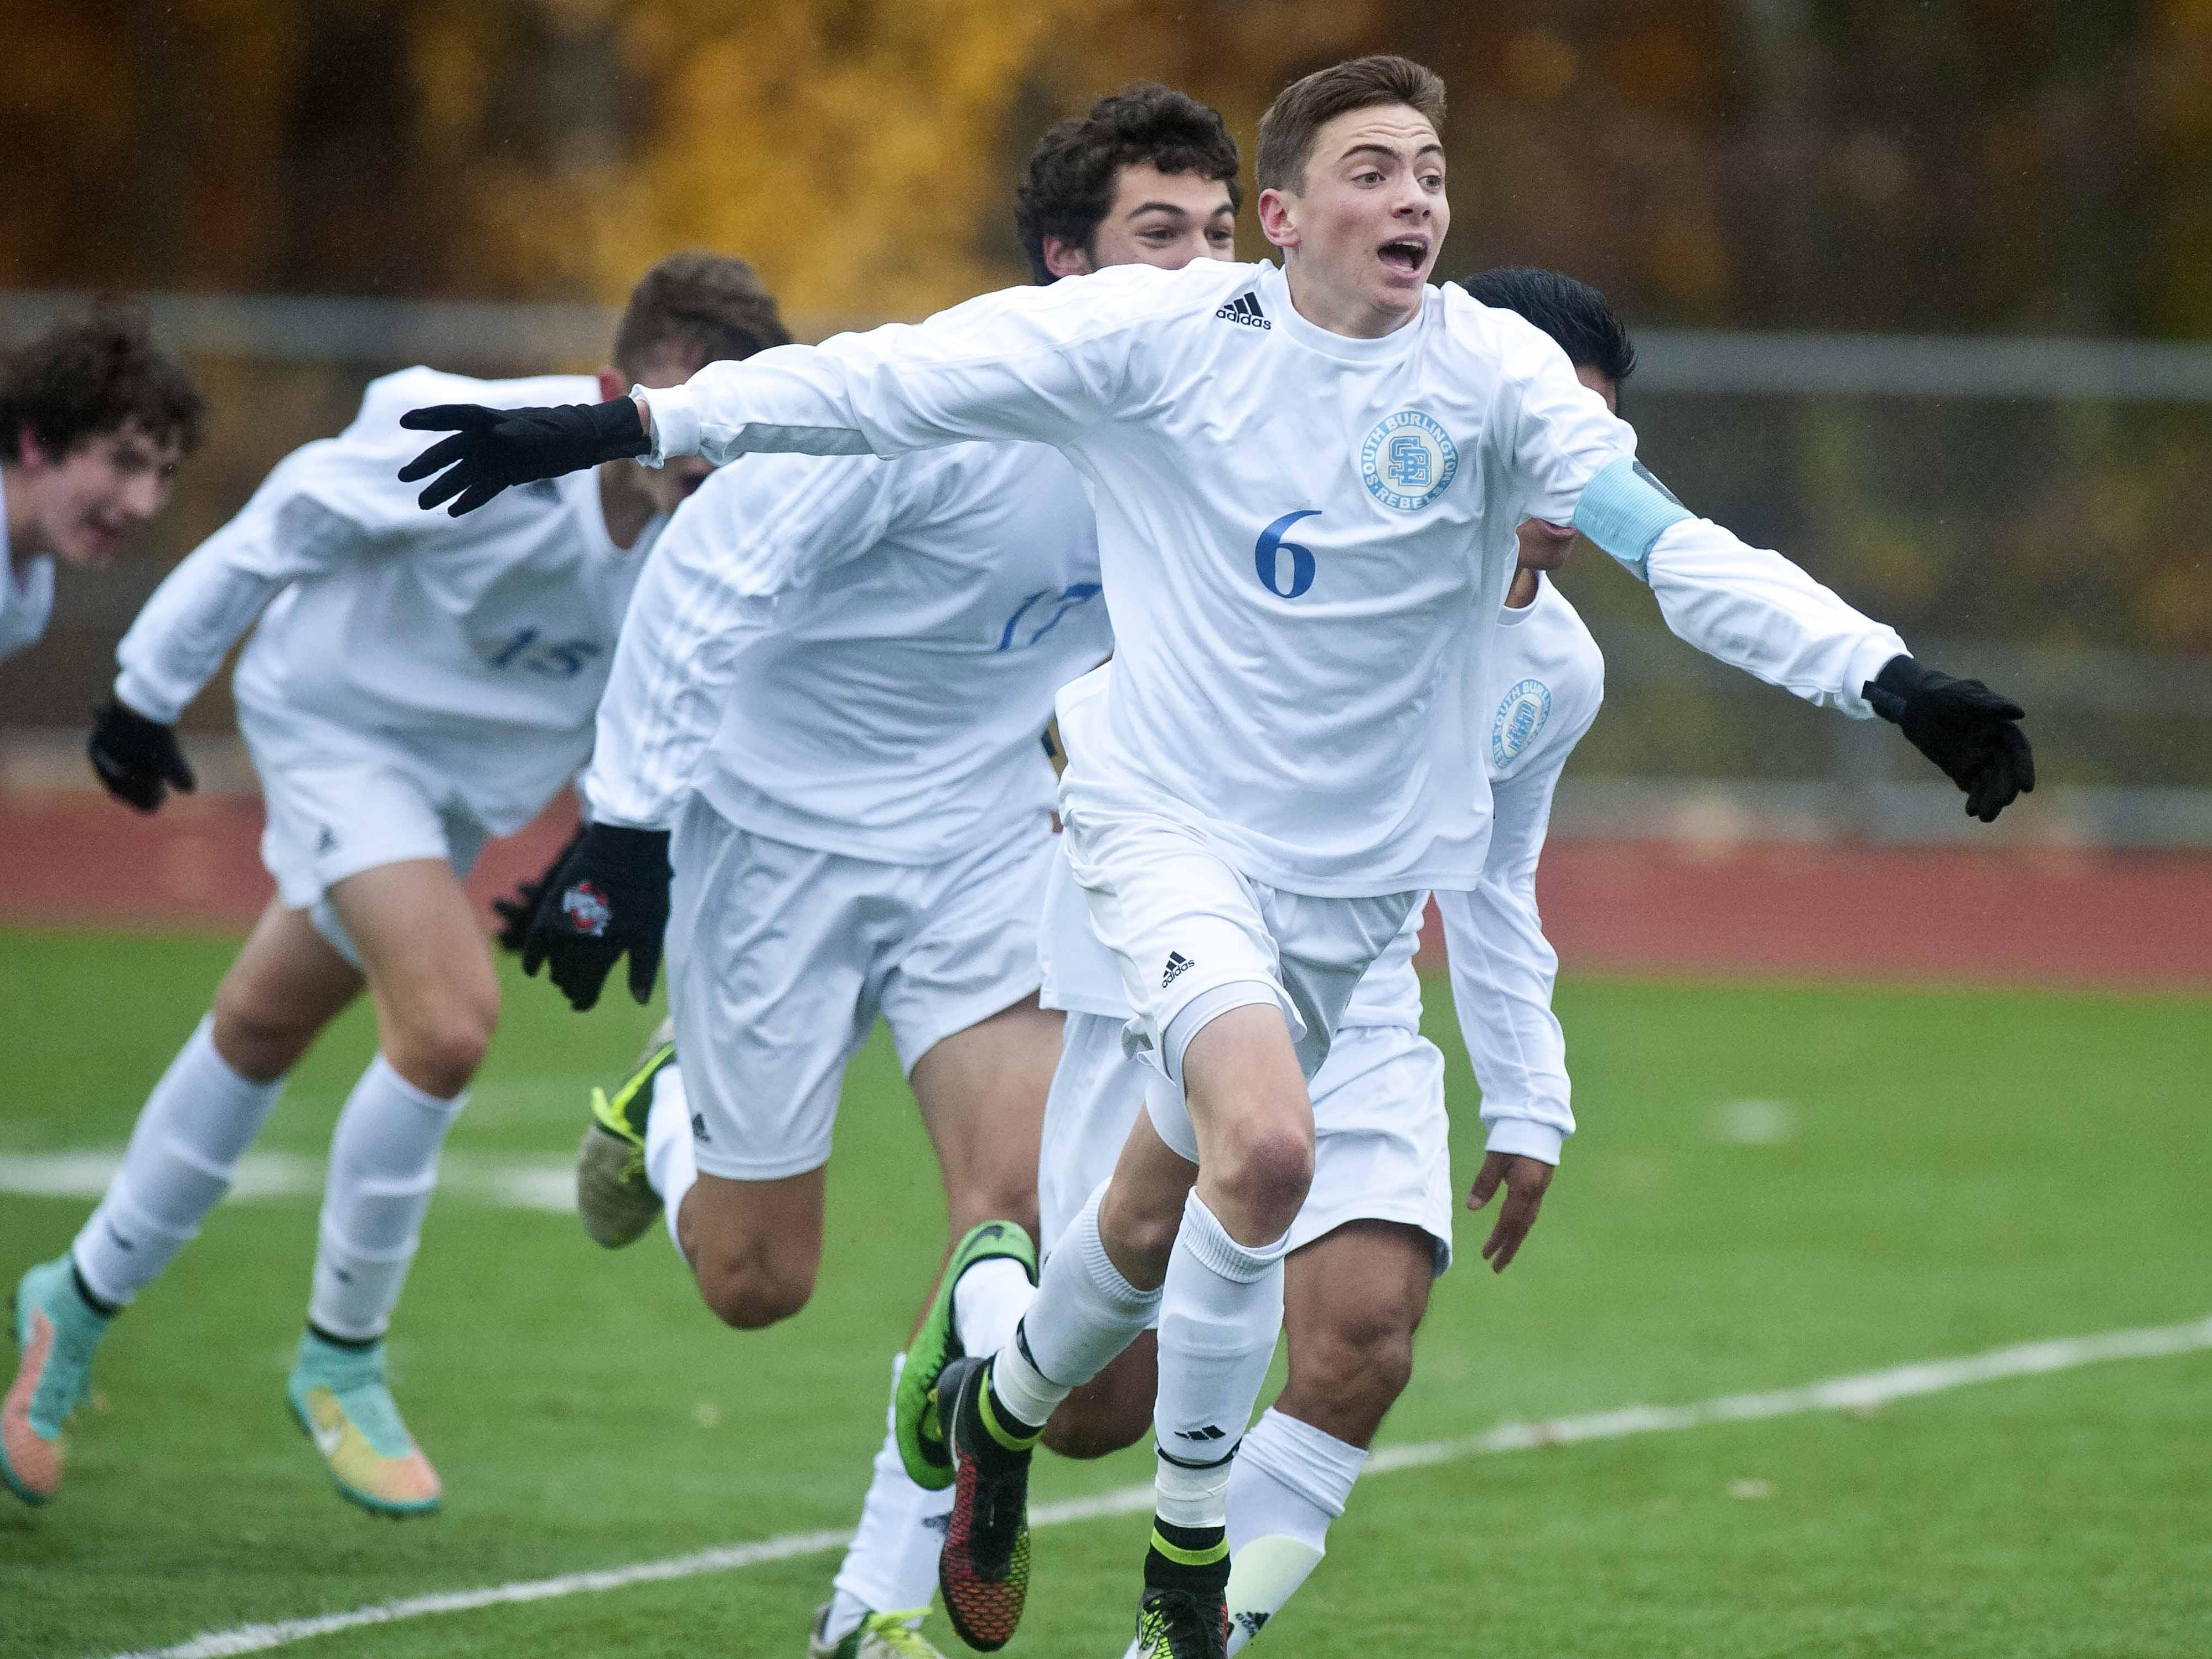 South Burlington's Alex Pasanen celebrates after scoring the equalizer with 8.4 seconds left in regulation against Essex in November's Division I final. The Rebels won in penalty kicks.